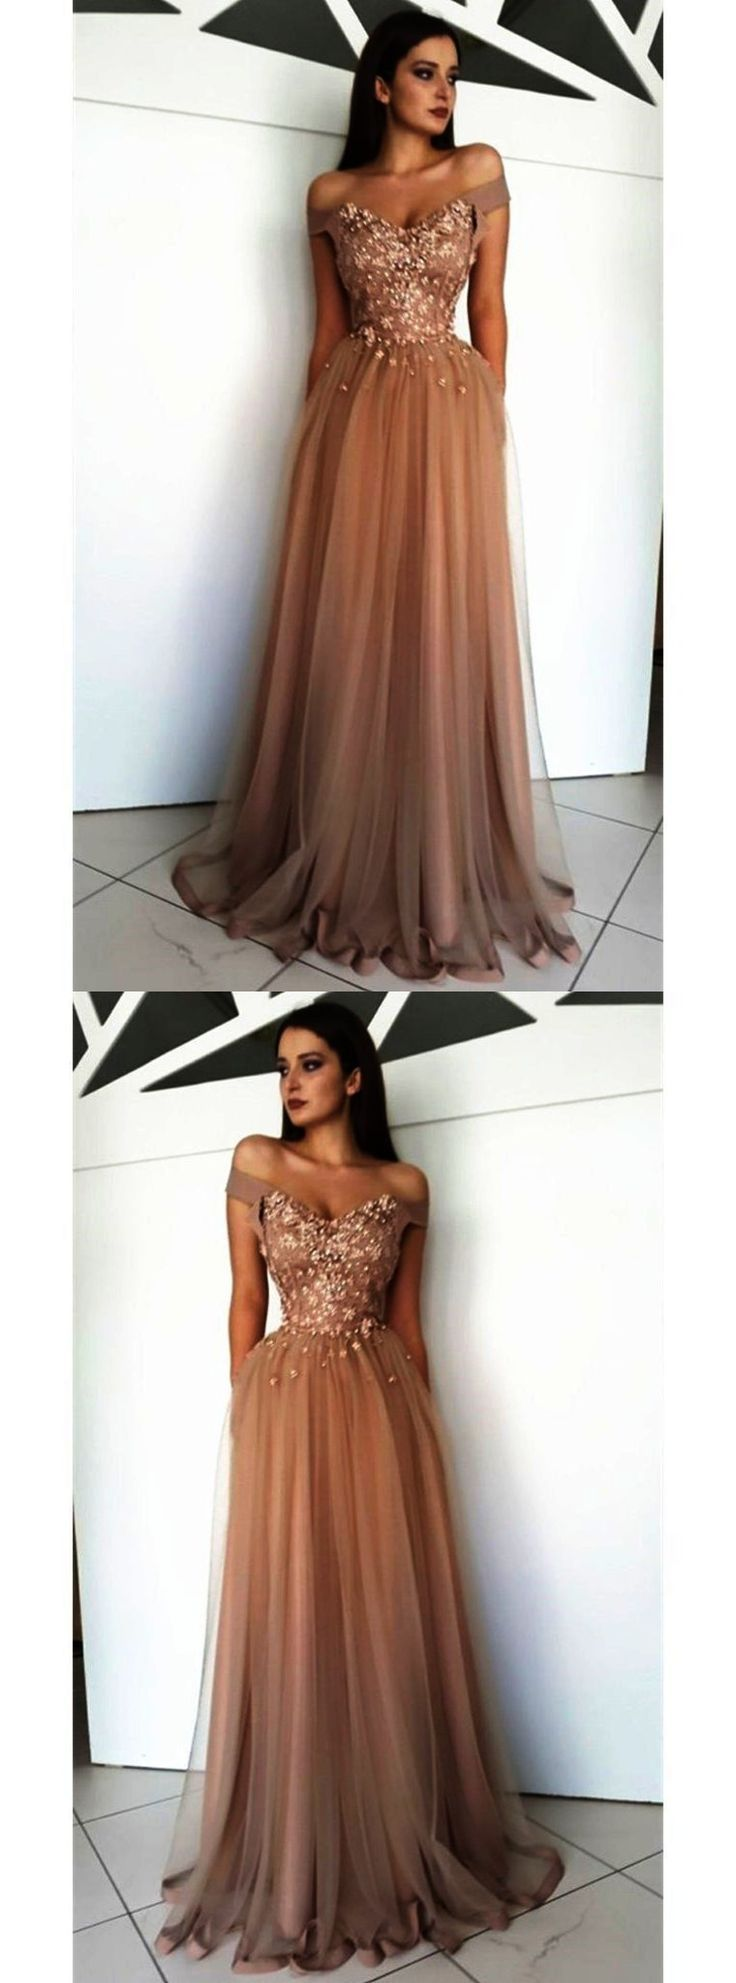 Prom dresses short and tight after 2019 prom dresses Sherri Hill - W